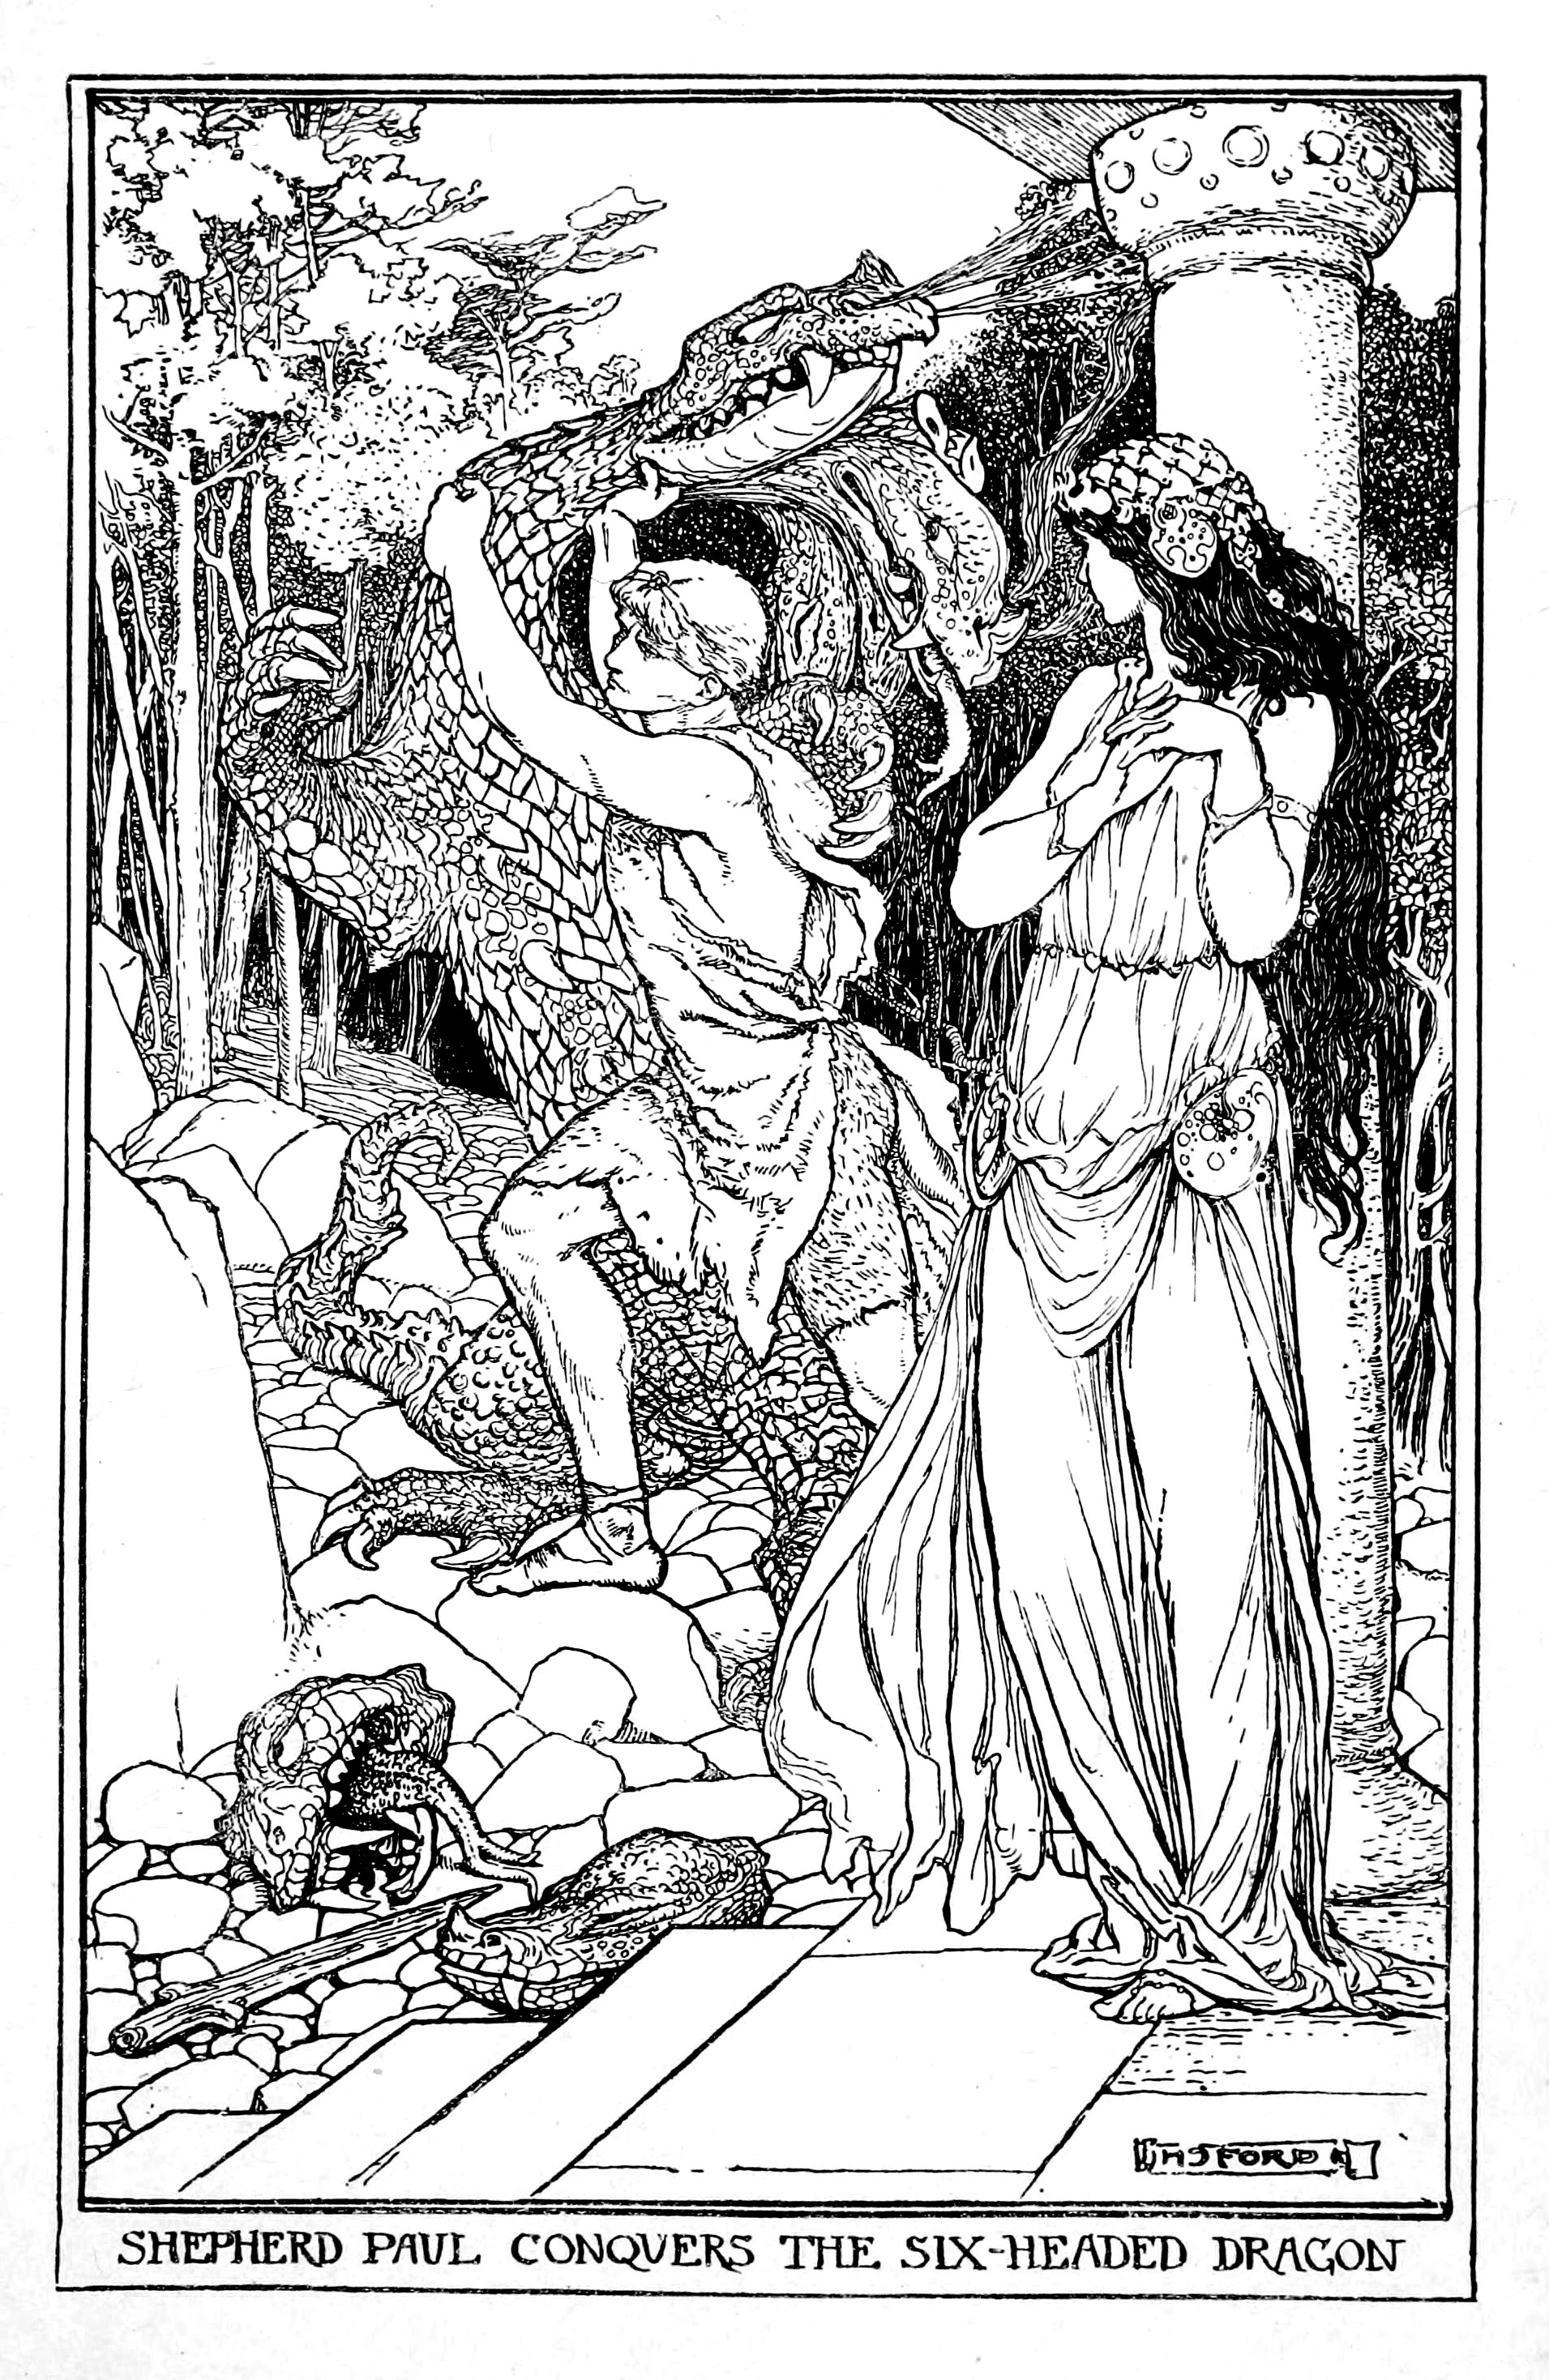 Henry Justice Ford - The crimson fairy book, edited by Andrew Lang, 1903 (illustration 11)